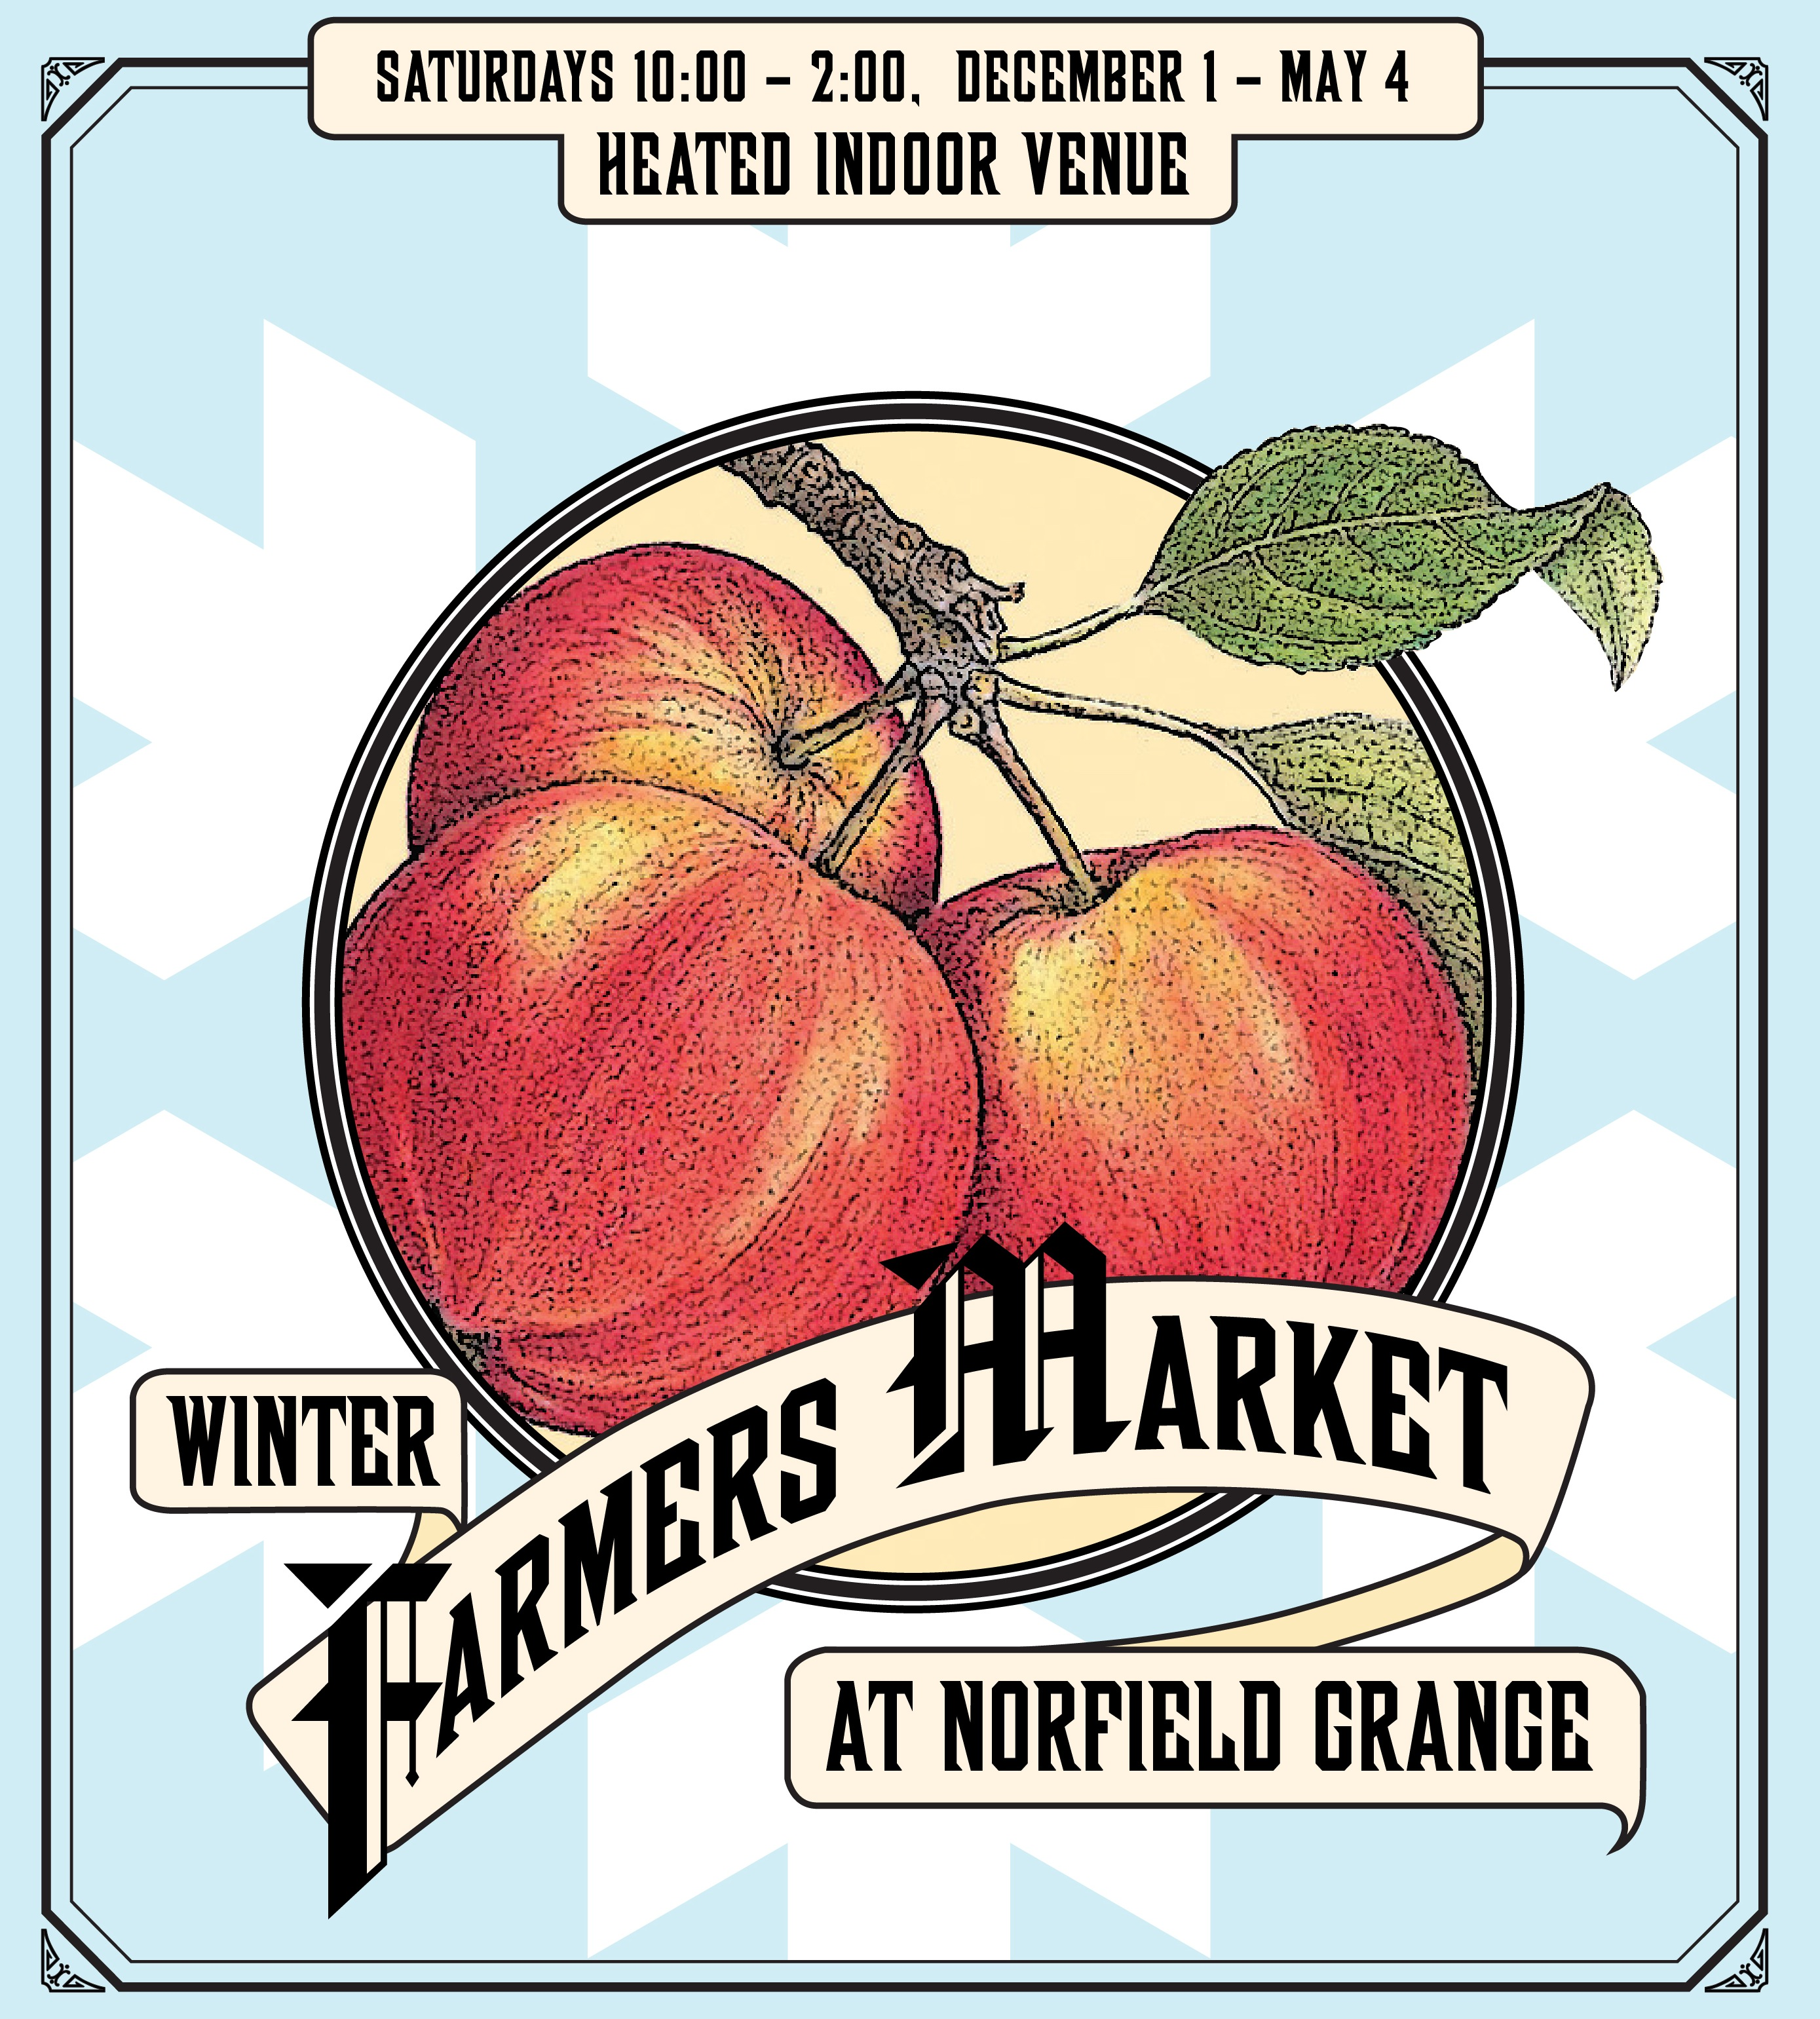 Homemade crafts at the Winter Farmers Market make great holiday gifts. Stop by Norfield Grange on Saturday from 10 a.m. to 2 p.m.